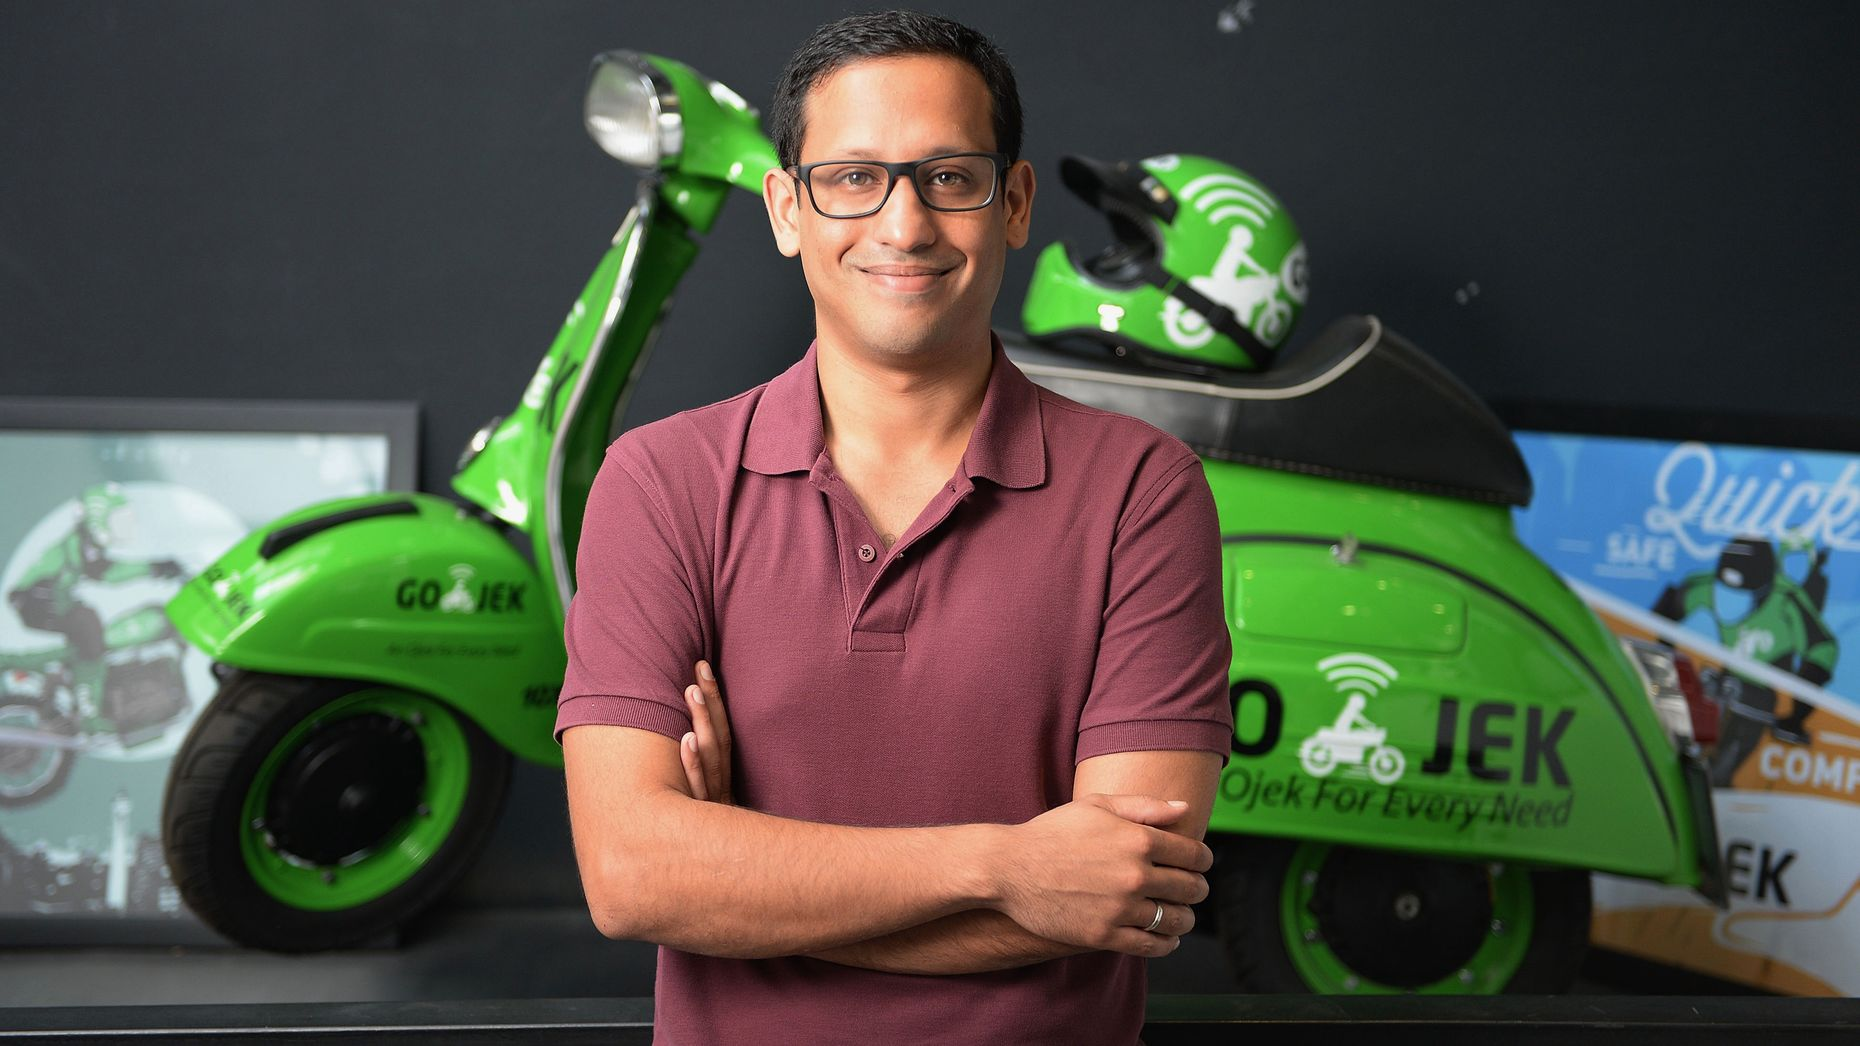 Go-Jek CEO Nadiem Makarim. Photo by Bloomberg.